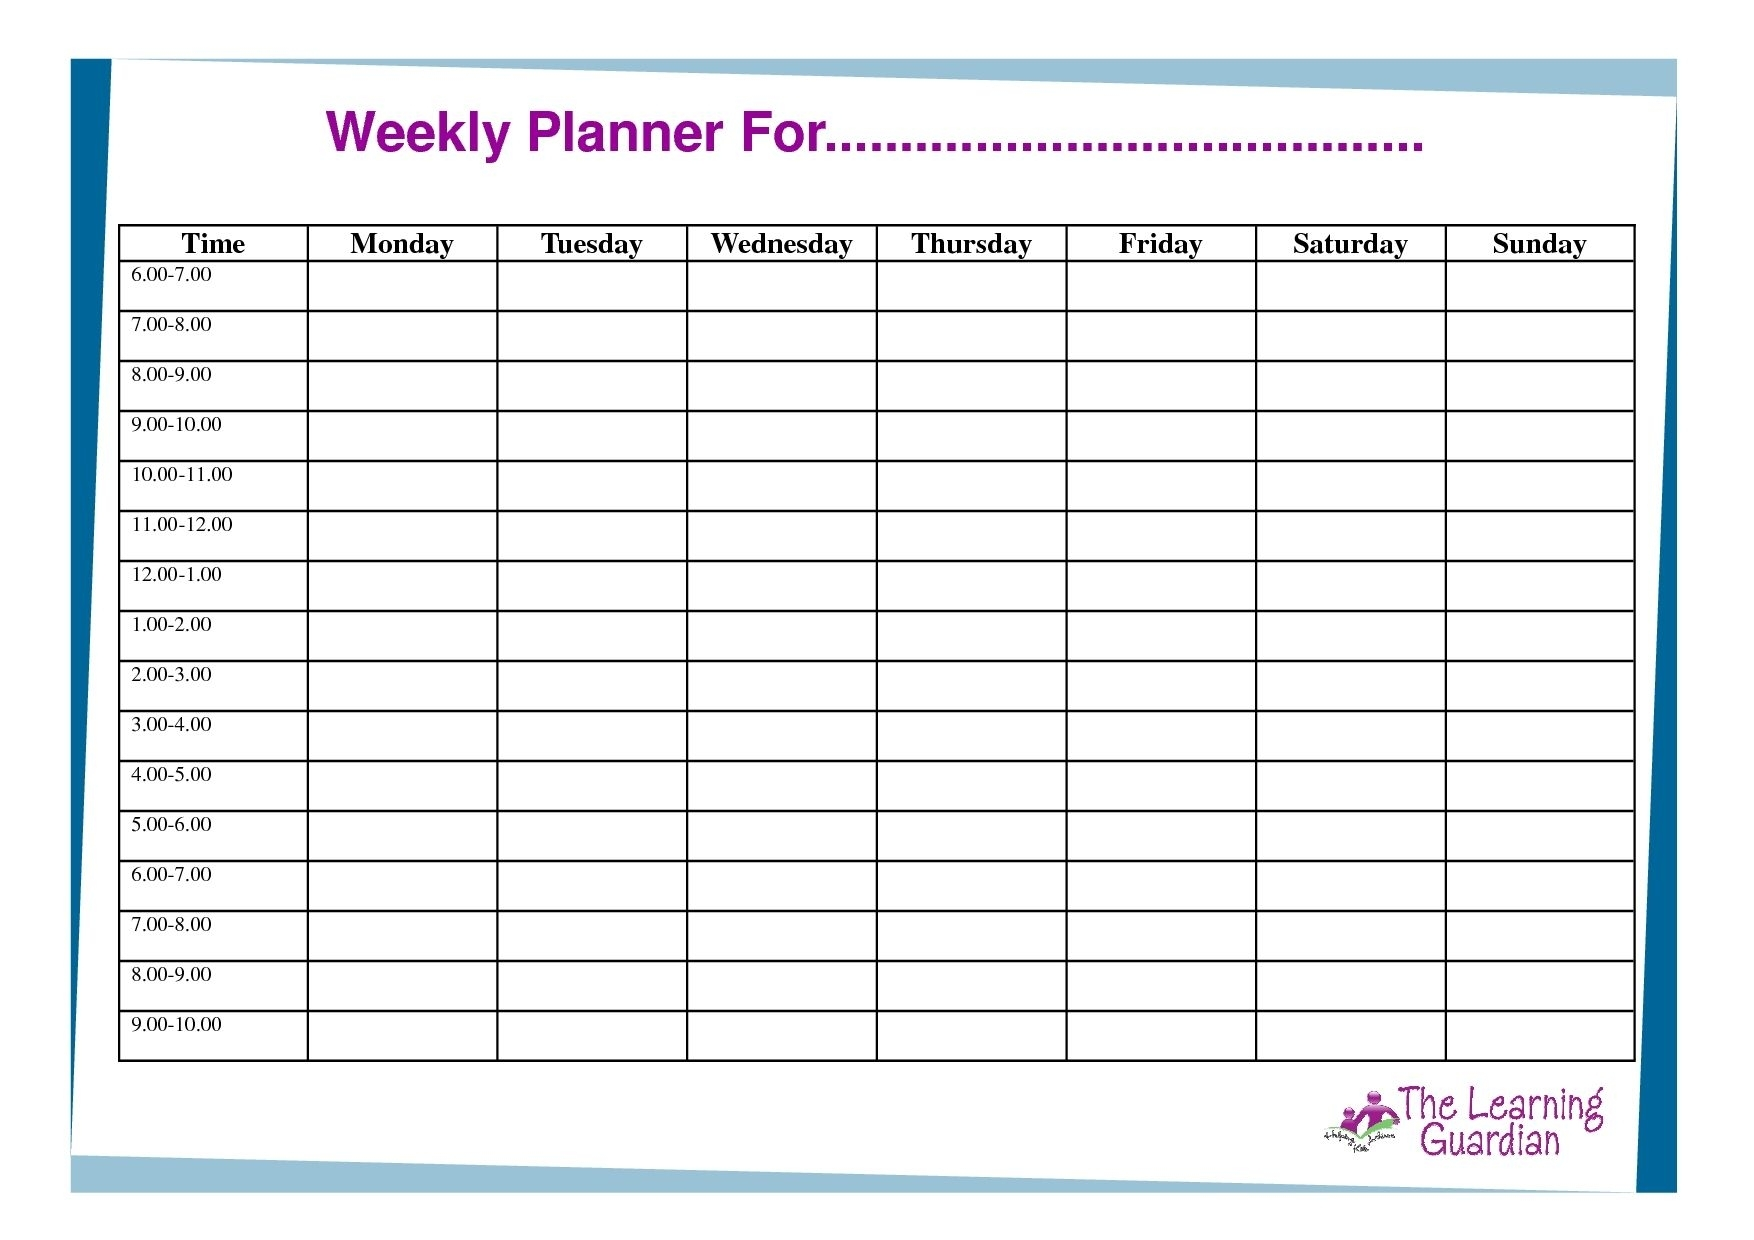 Free Printable Weekly Calendar Templates Planner For Time Incredible regarding Full Size Weekly Calendar Templates